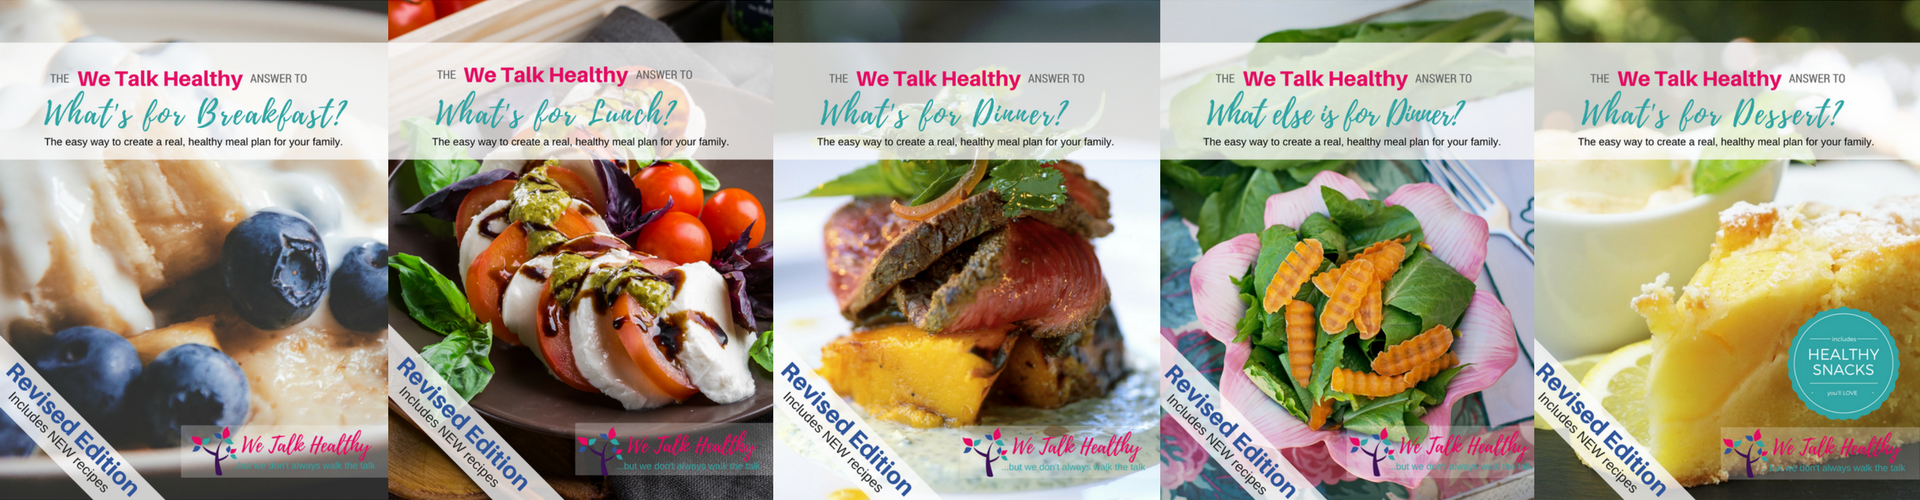 The WeTalkHealthy Answer to What's for Breakfast Cookbook